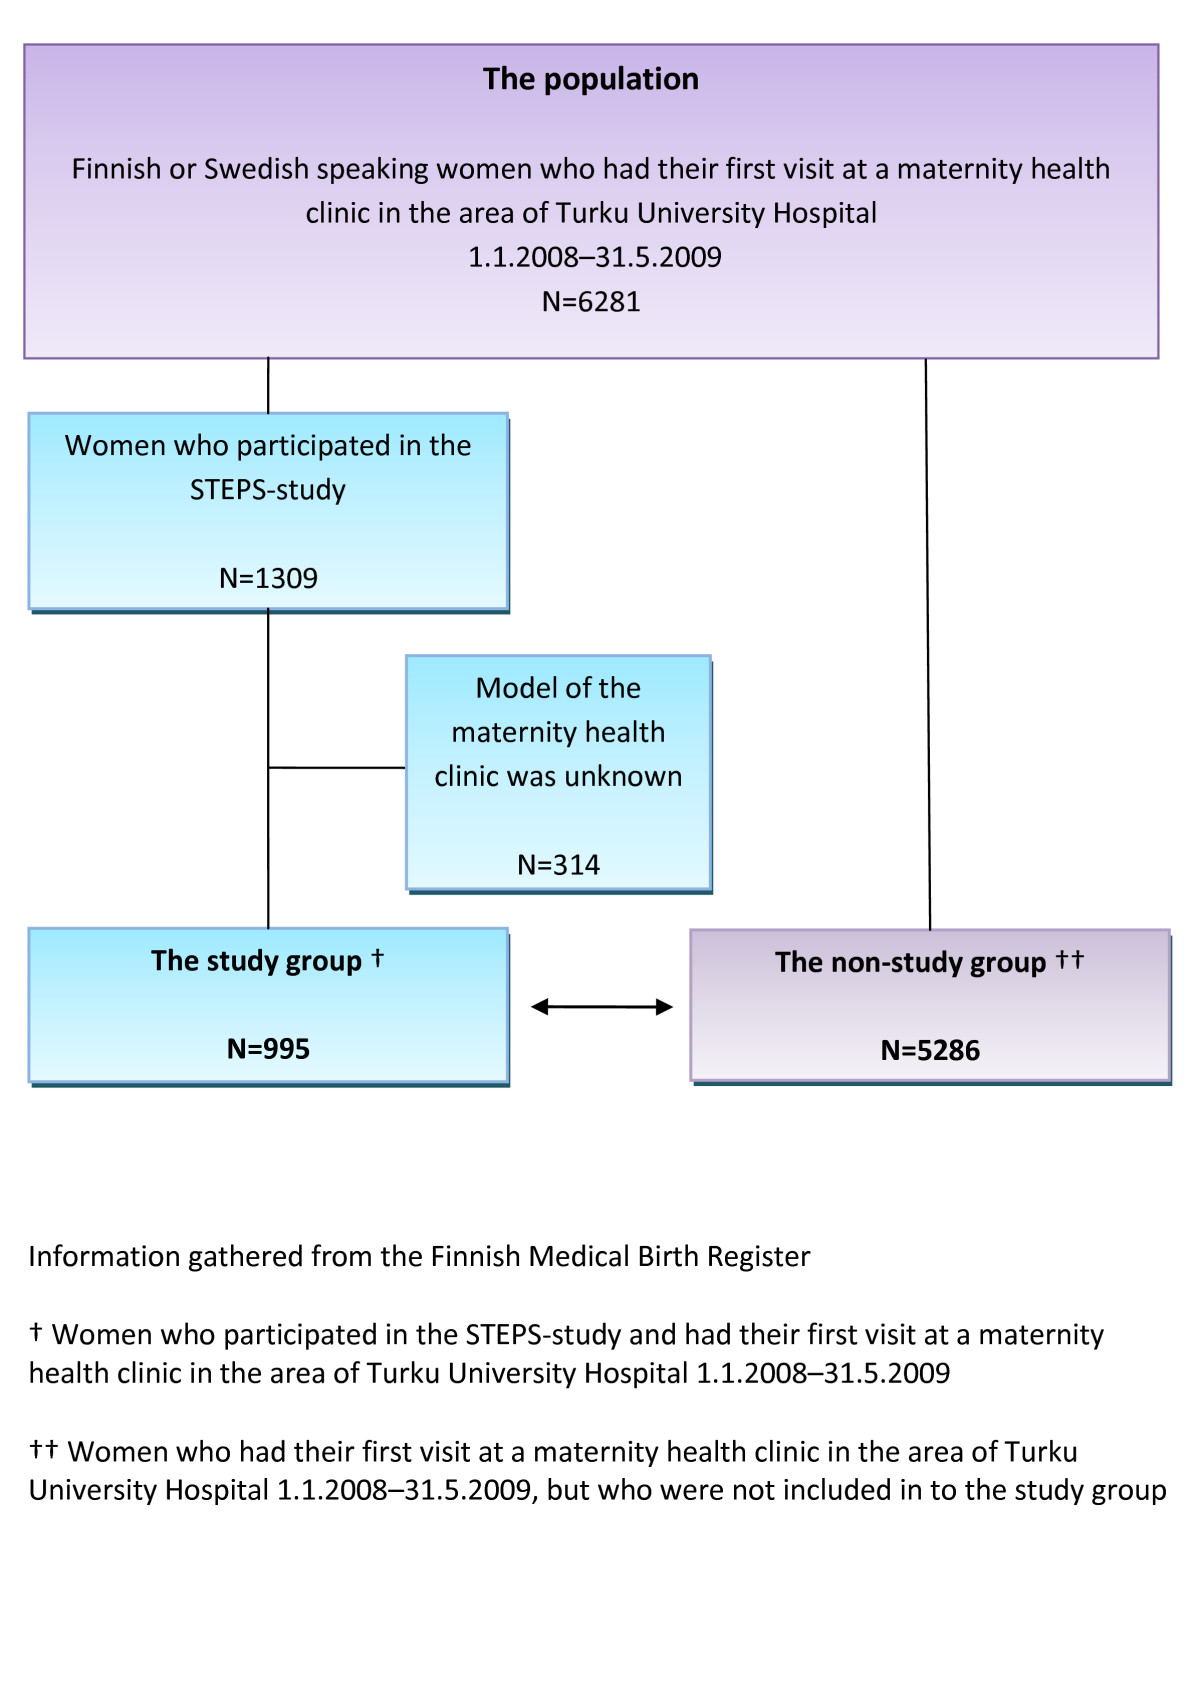 https://static-content.springer.com/image/art%3A10.1186%2F1471-2393-12-96/MediaObjects/12884_2012_Article_579_Fig1_HTML.jpg